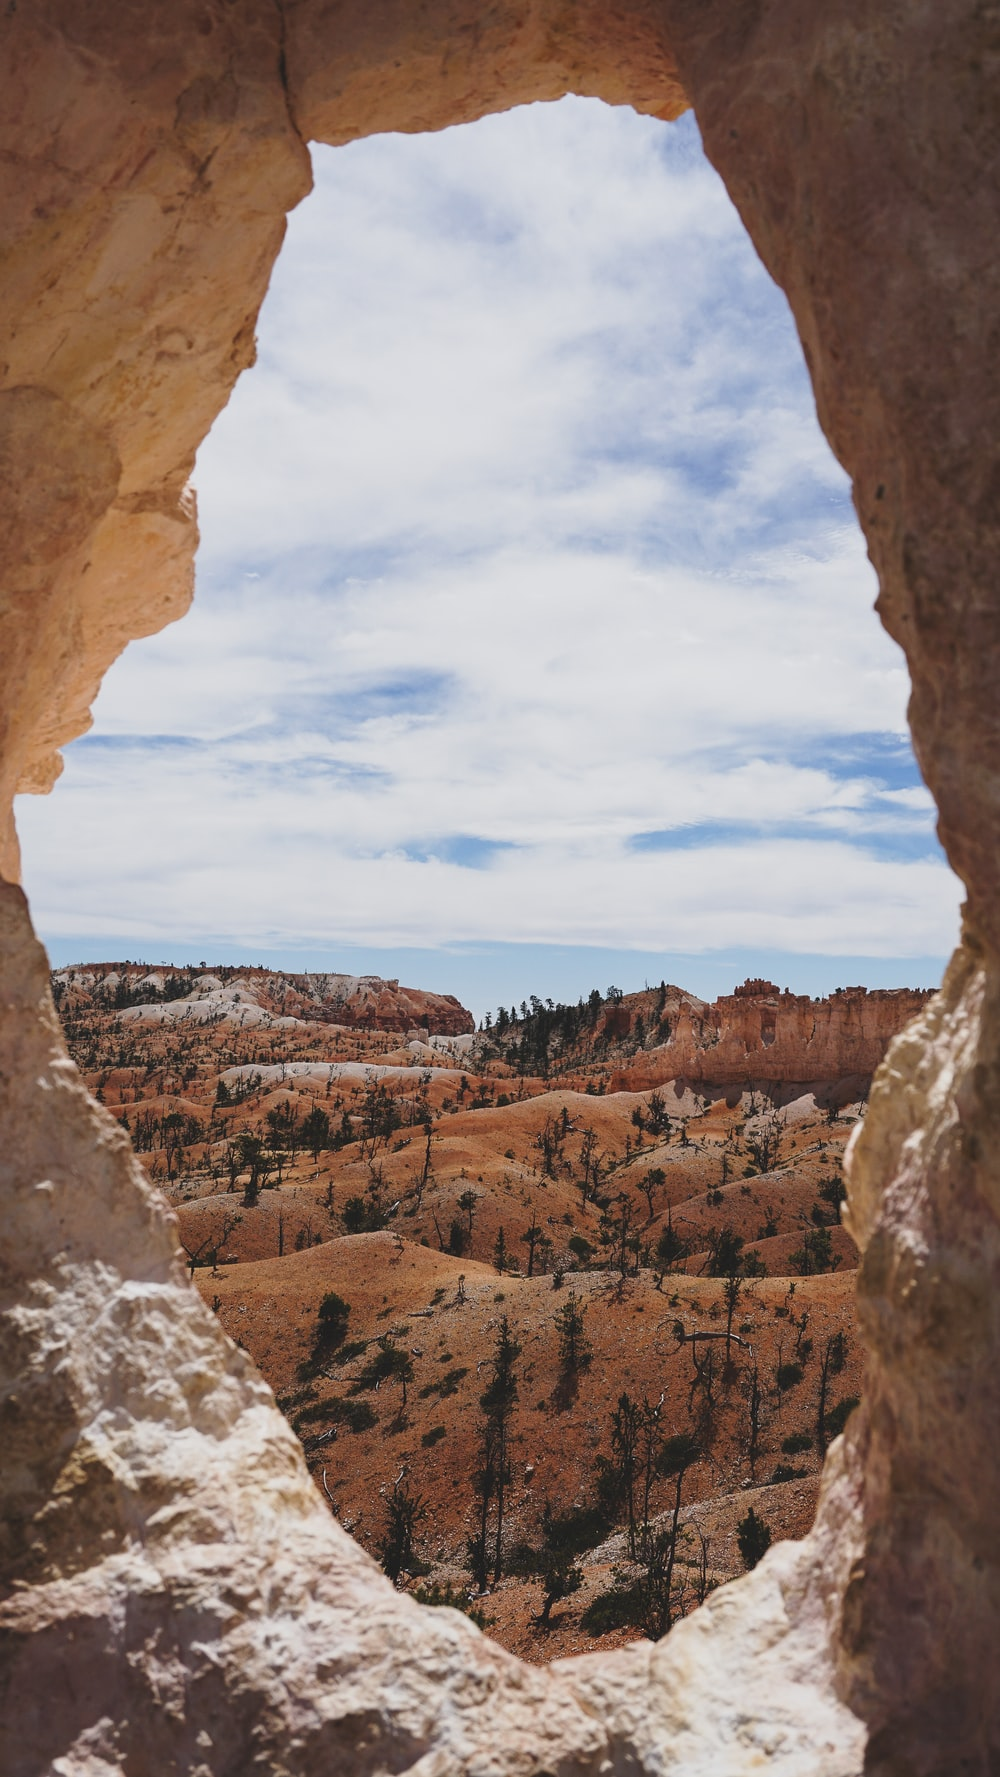 brown rock formation under white clouds and blue sky during daytime